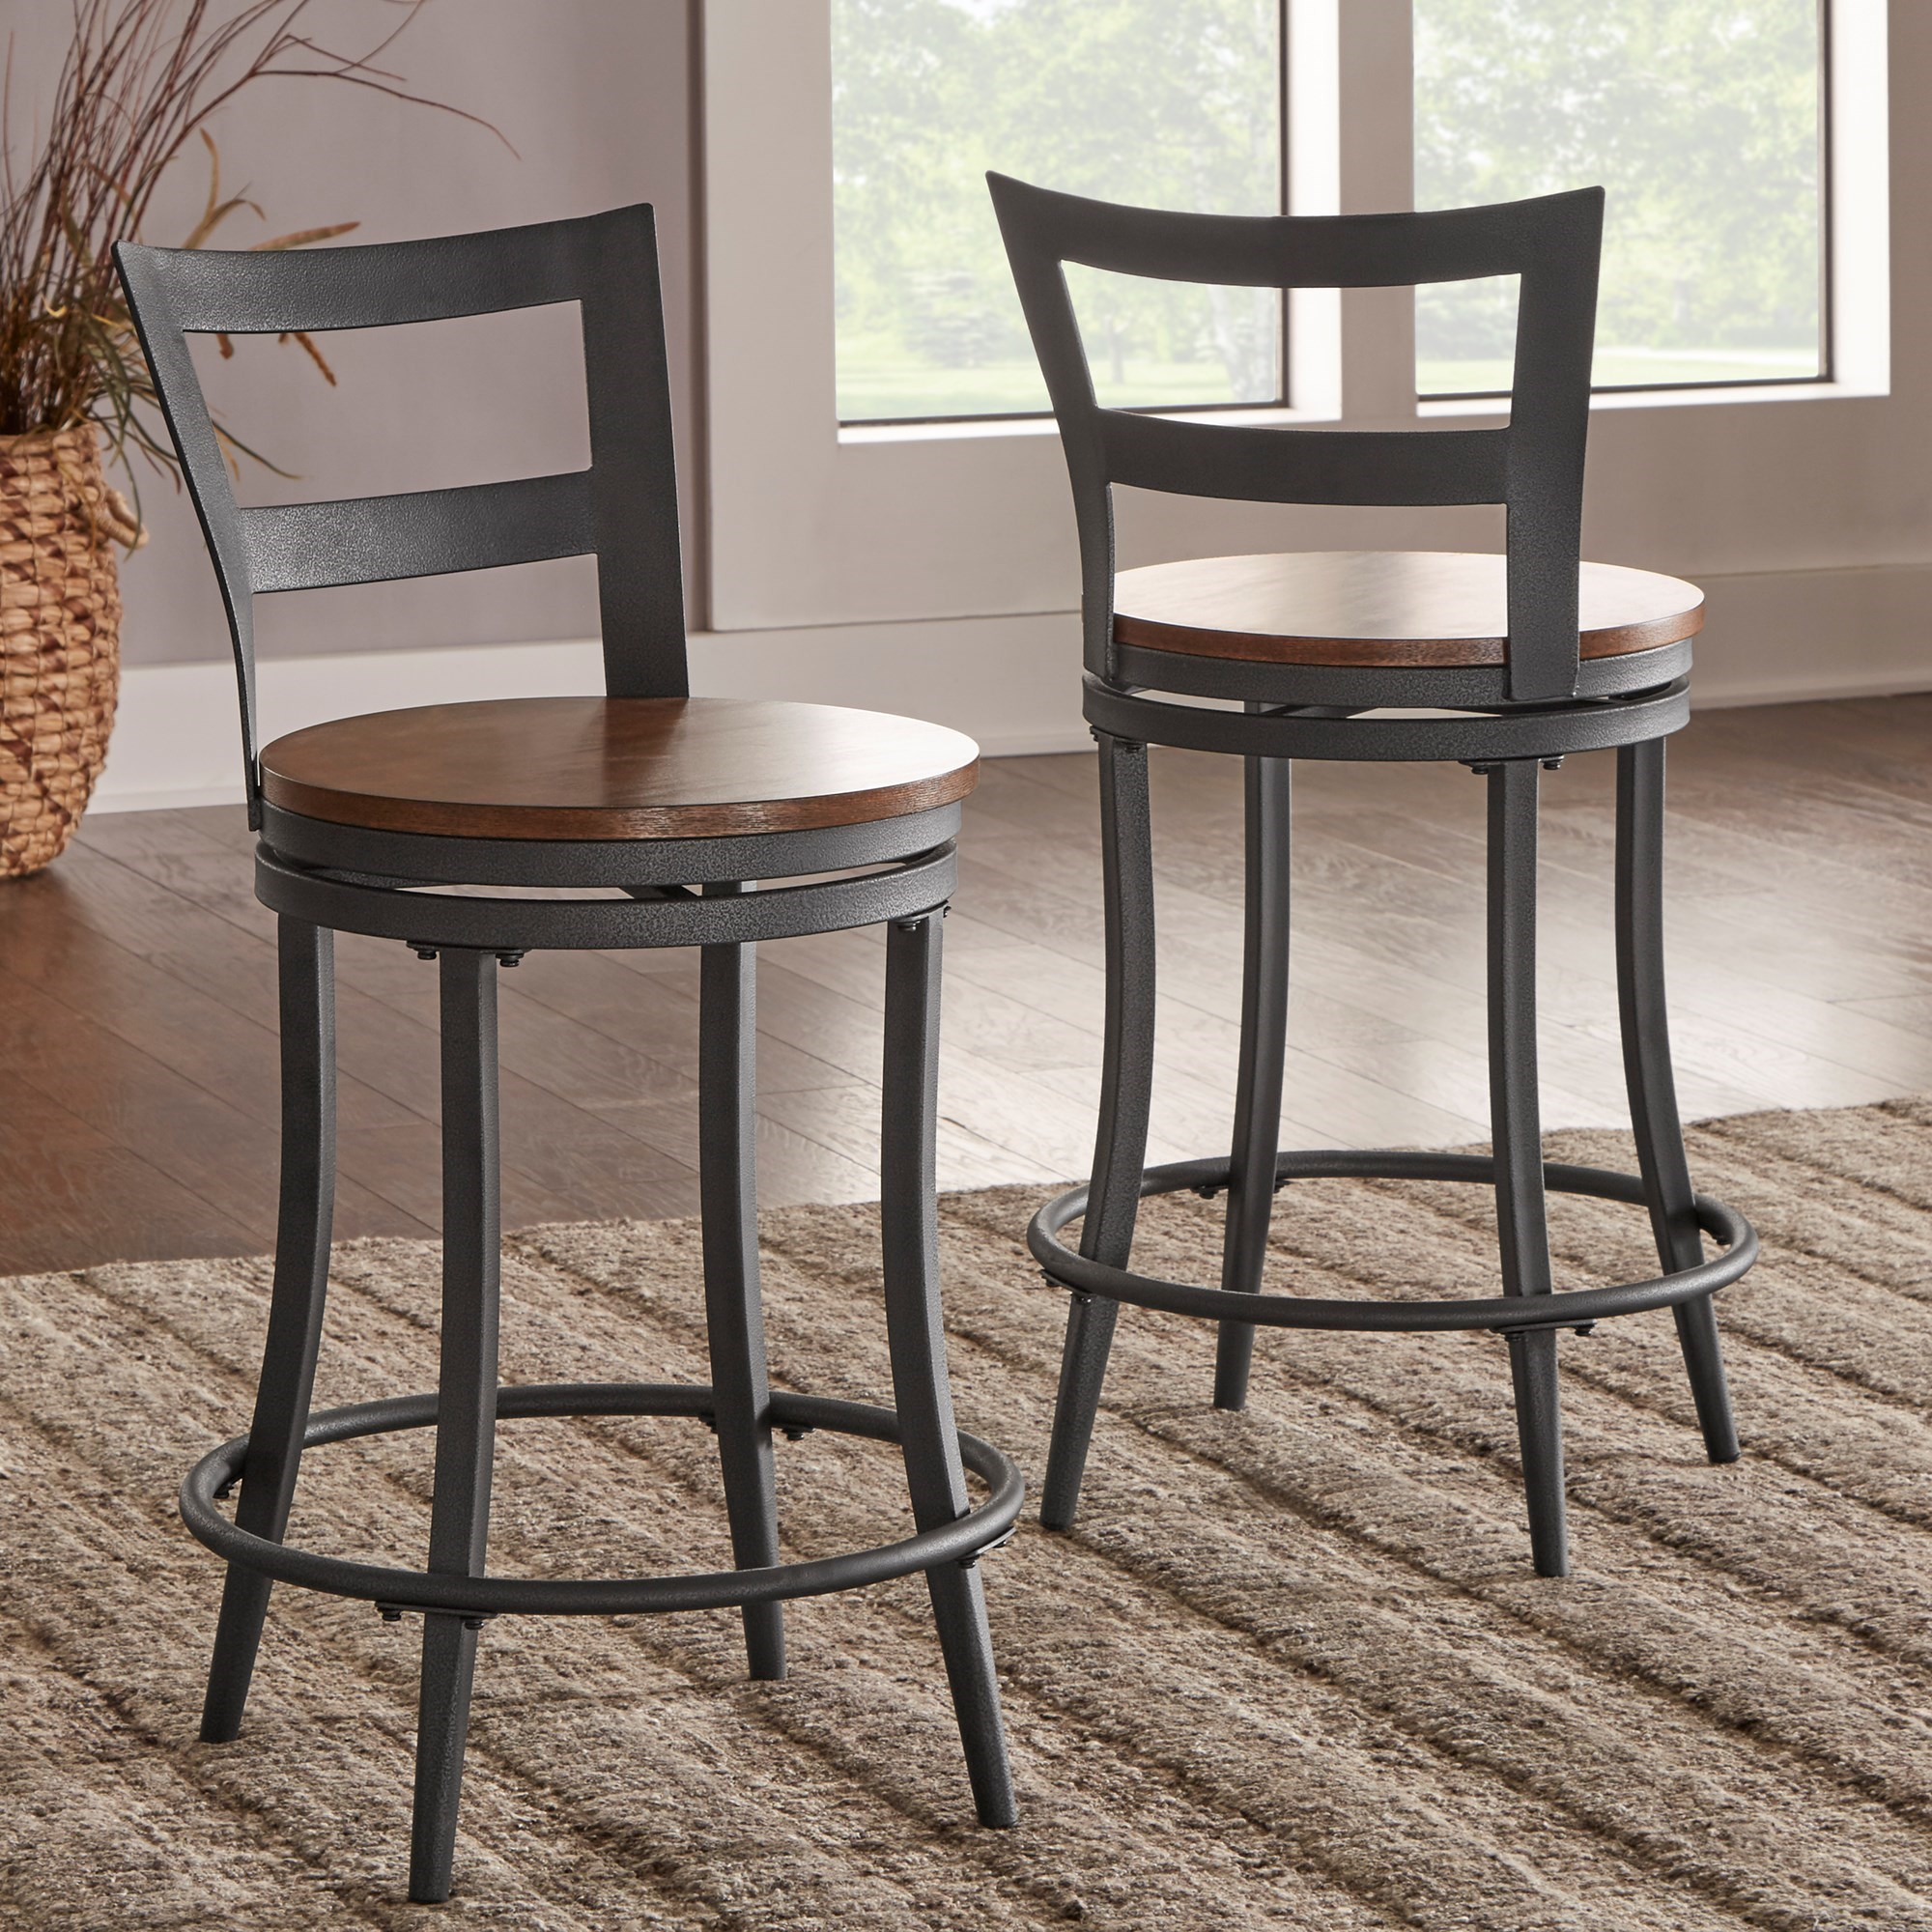 Homelegance Selbyville Contemporary Counter Height Chair